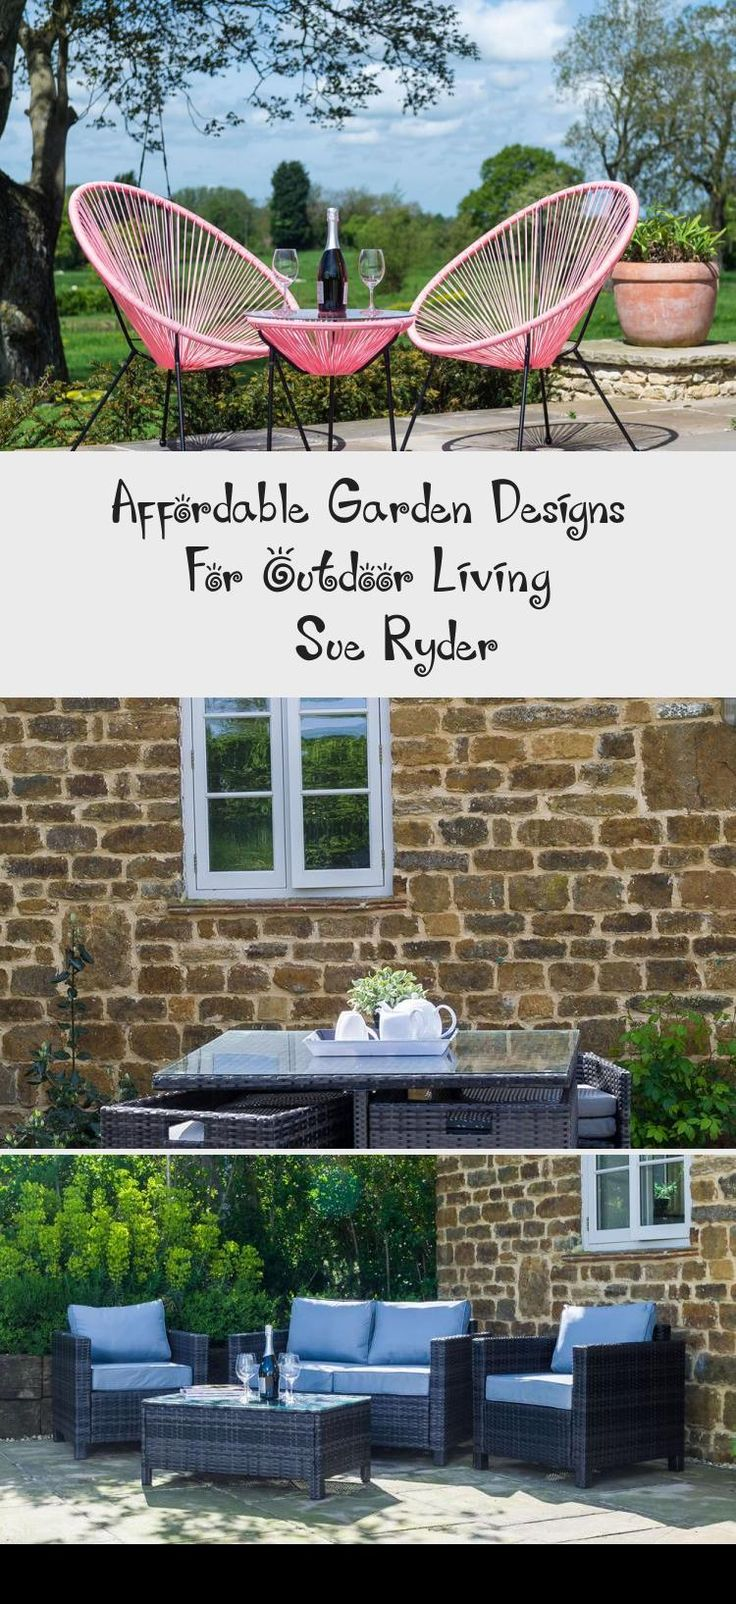 Affordable Garden Designs For Outdoor Living - Sue Ryder ... on Ab And Outdoor Living id=91117